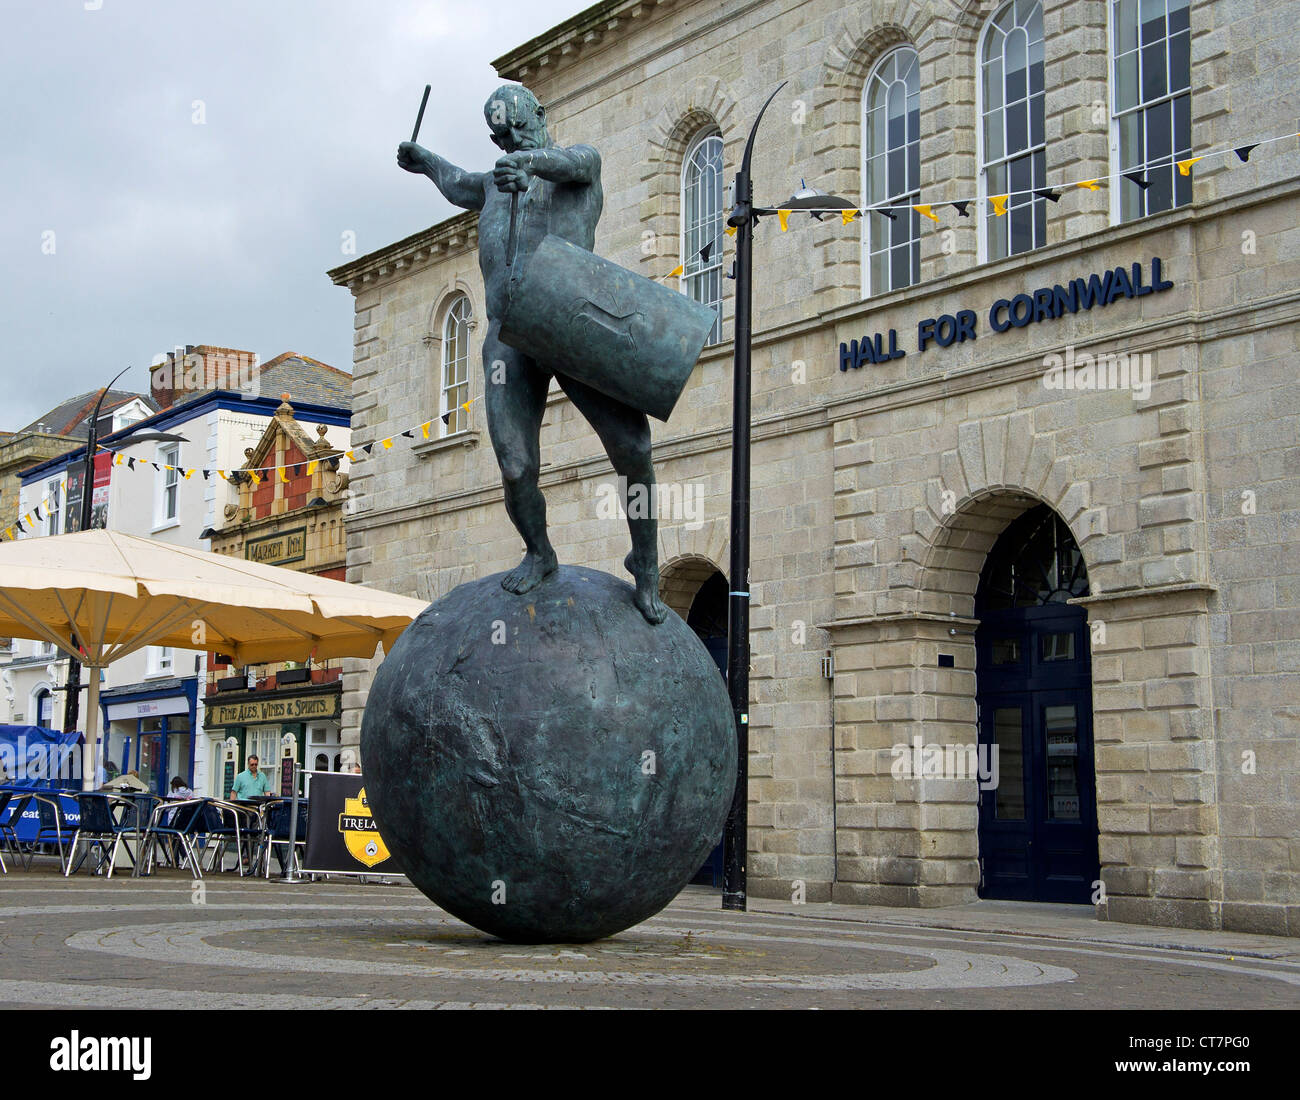 ' The Drummer ' a sculpture of bronze and cornish tin by Tim Shaw on Lemon Quay in Truro, Cornwall, England, - Stock Image